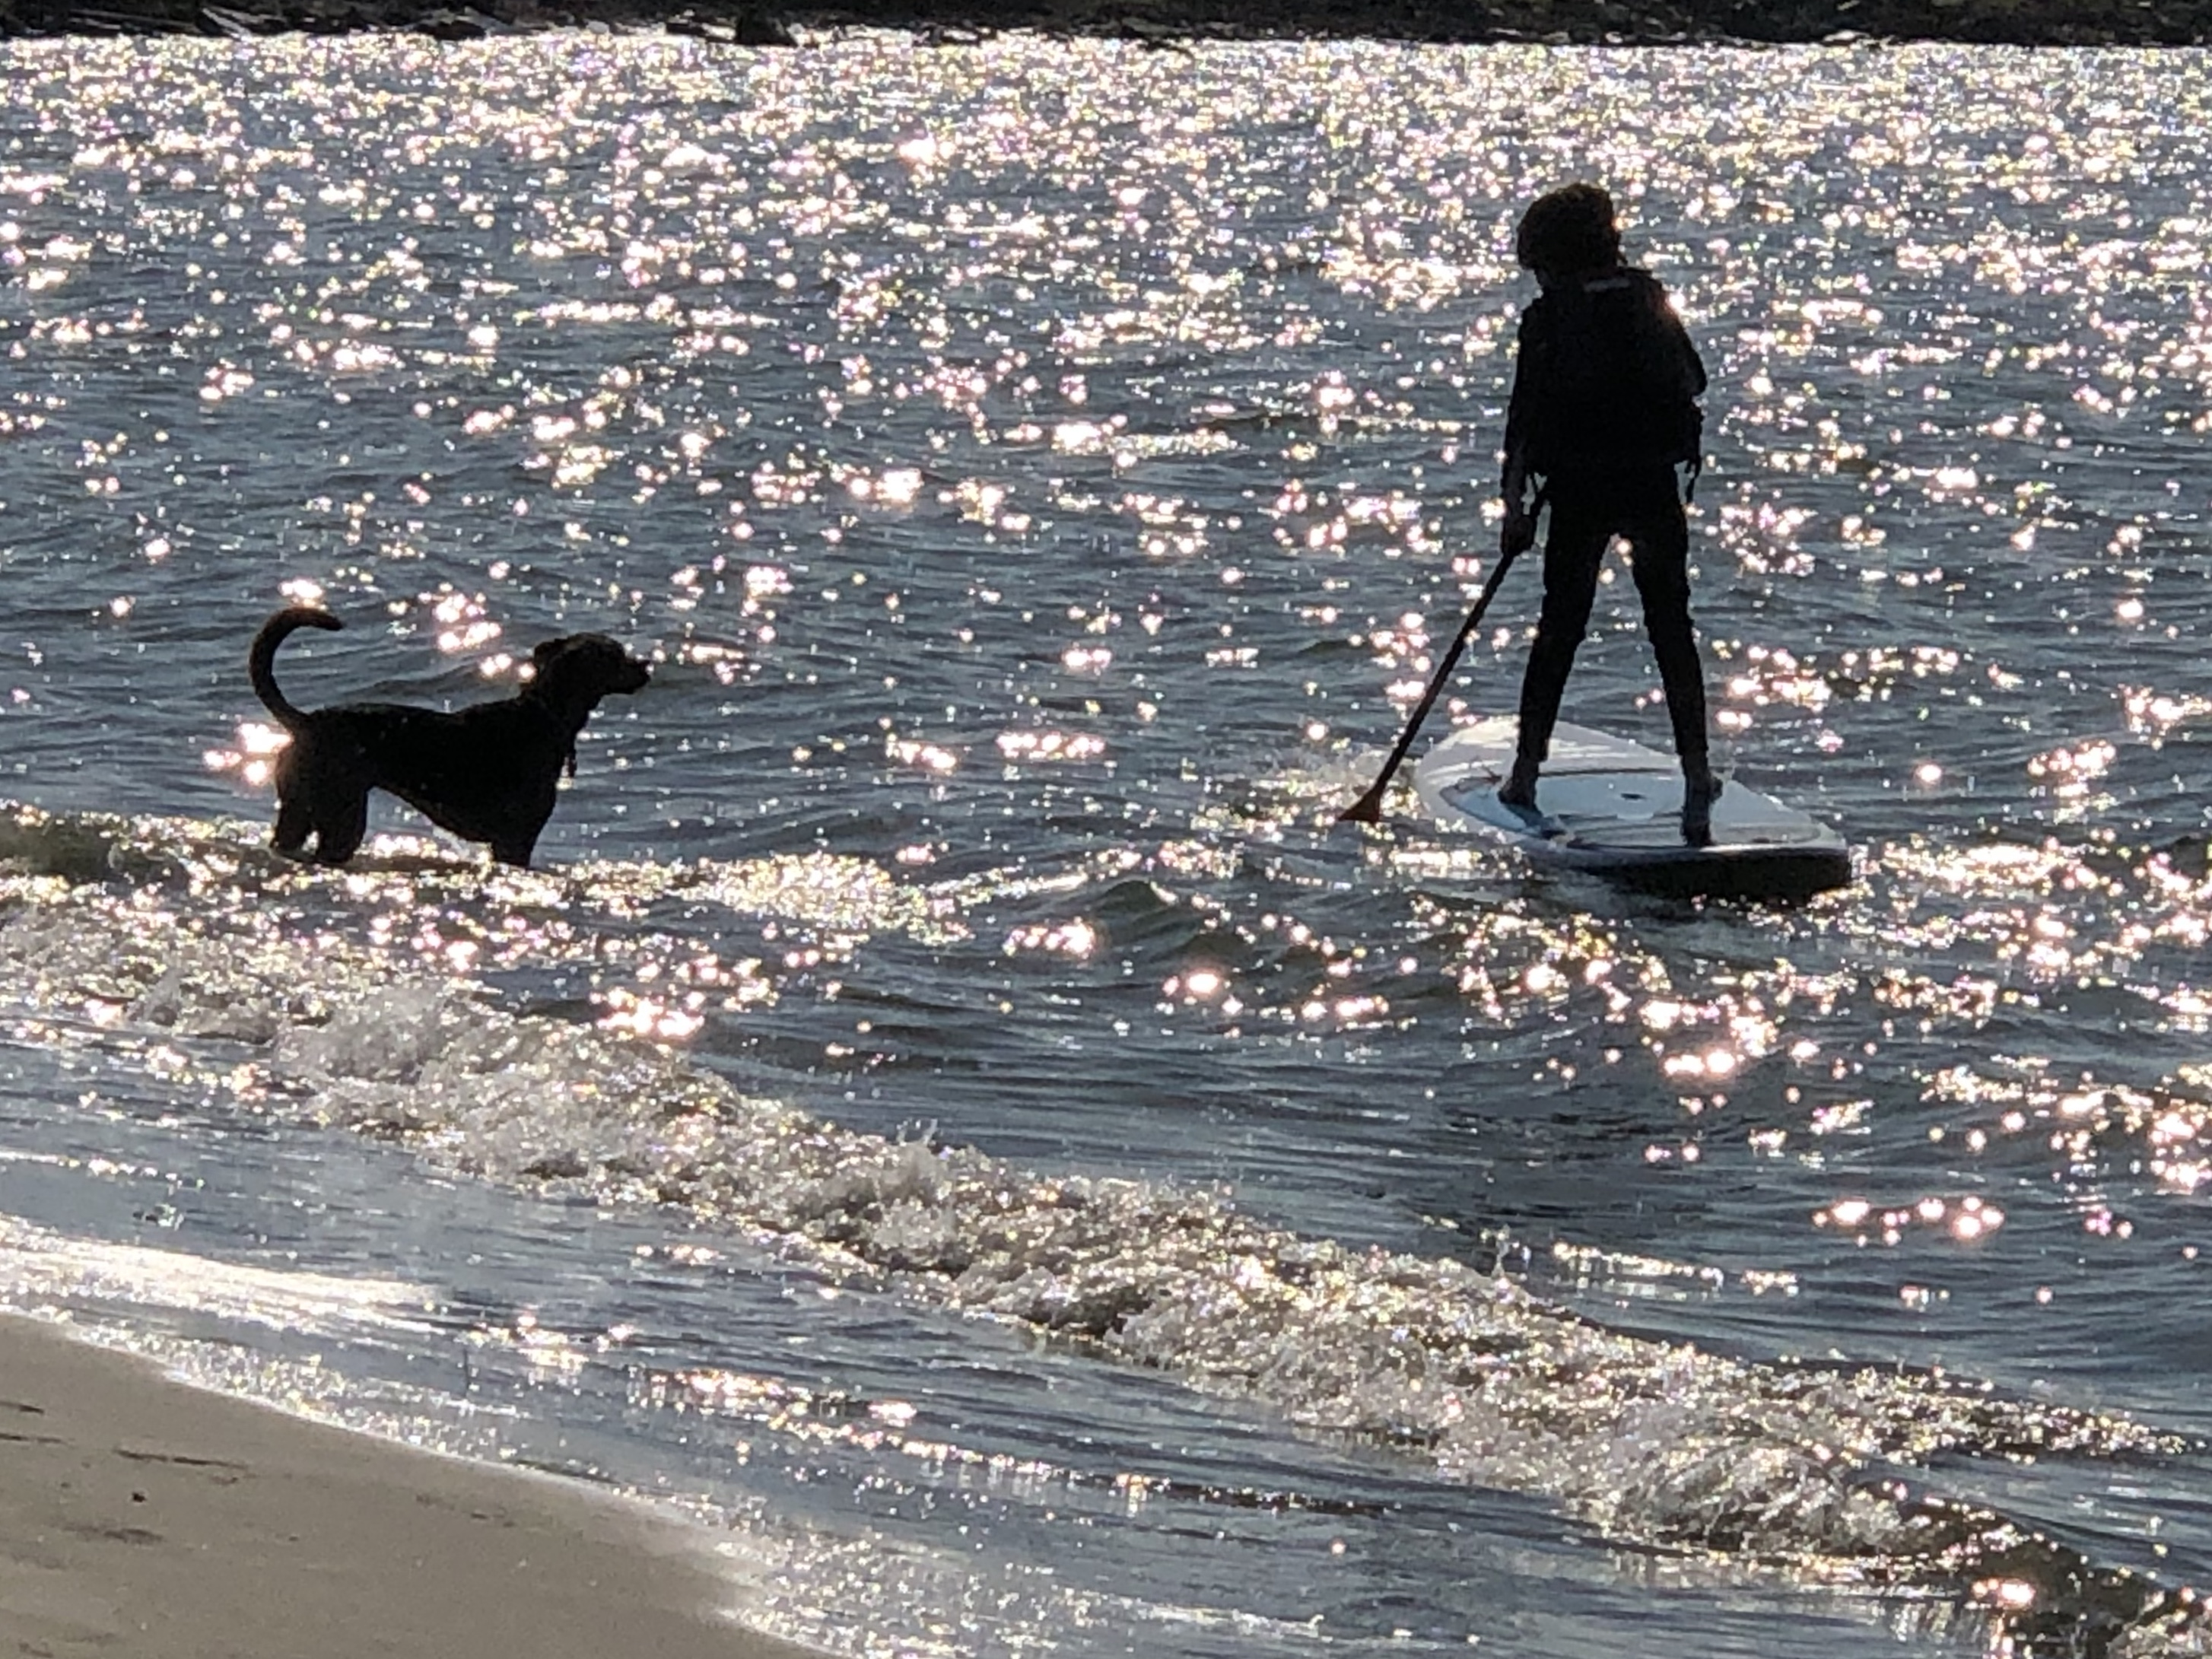 Dog and paddle boarder